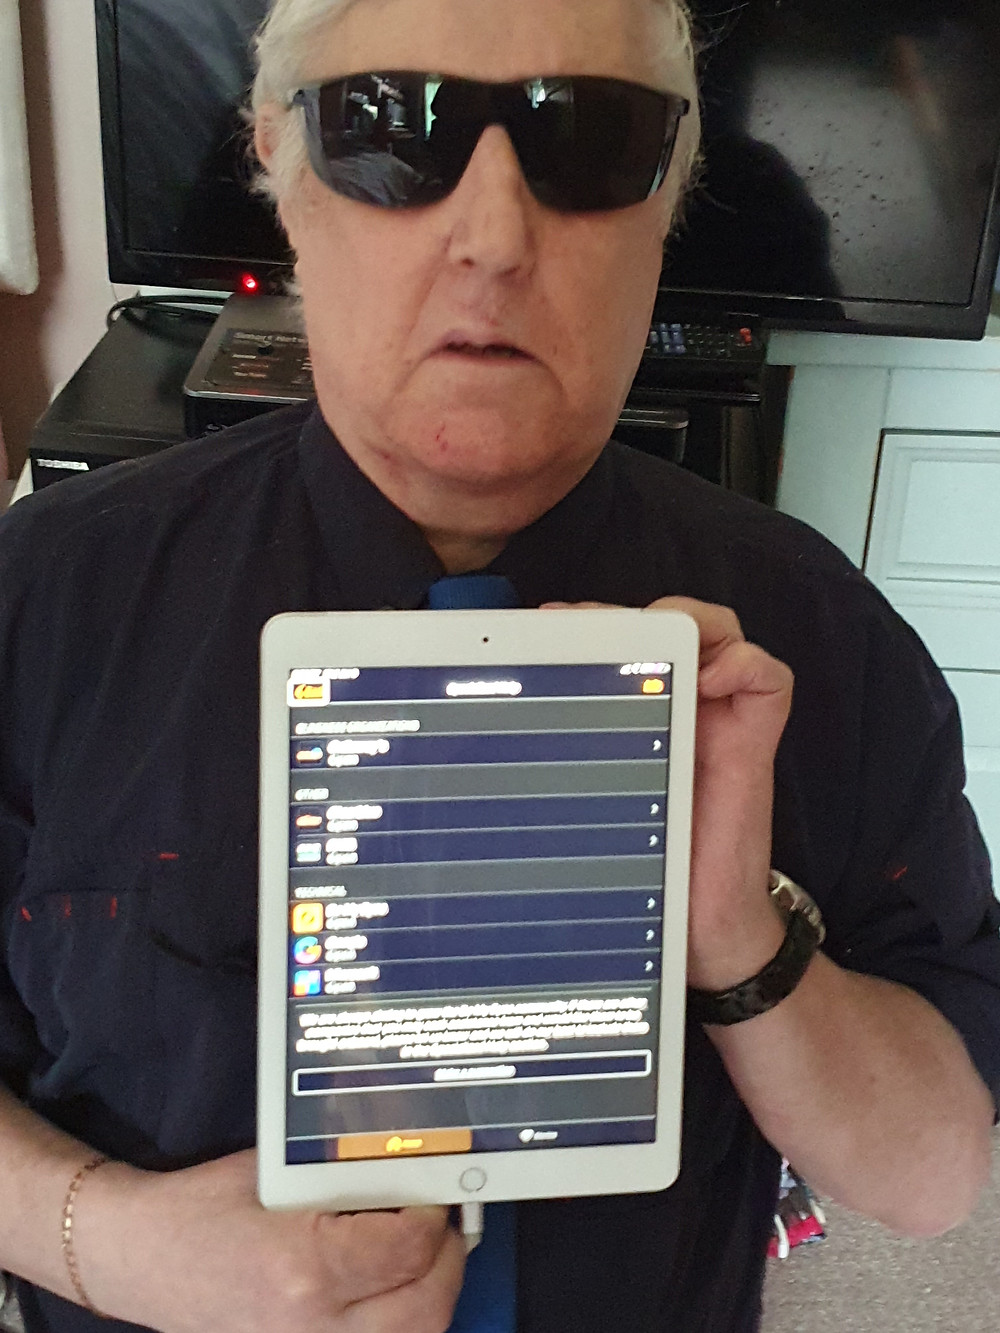 Photo shows David, wearing dark glasses, holding up a Tablet. He has the Be My Eyes menu on the screen